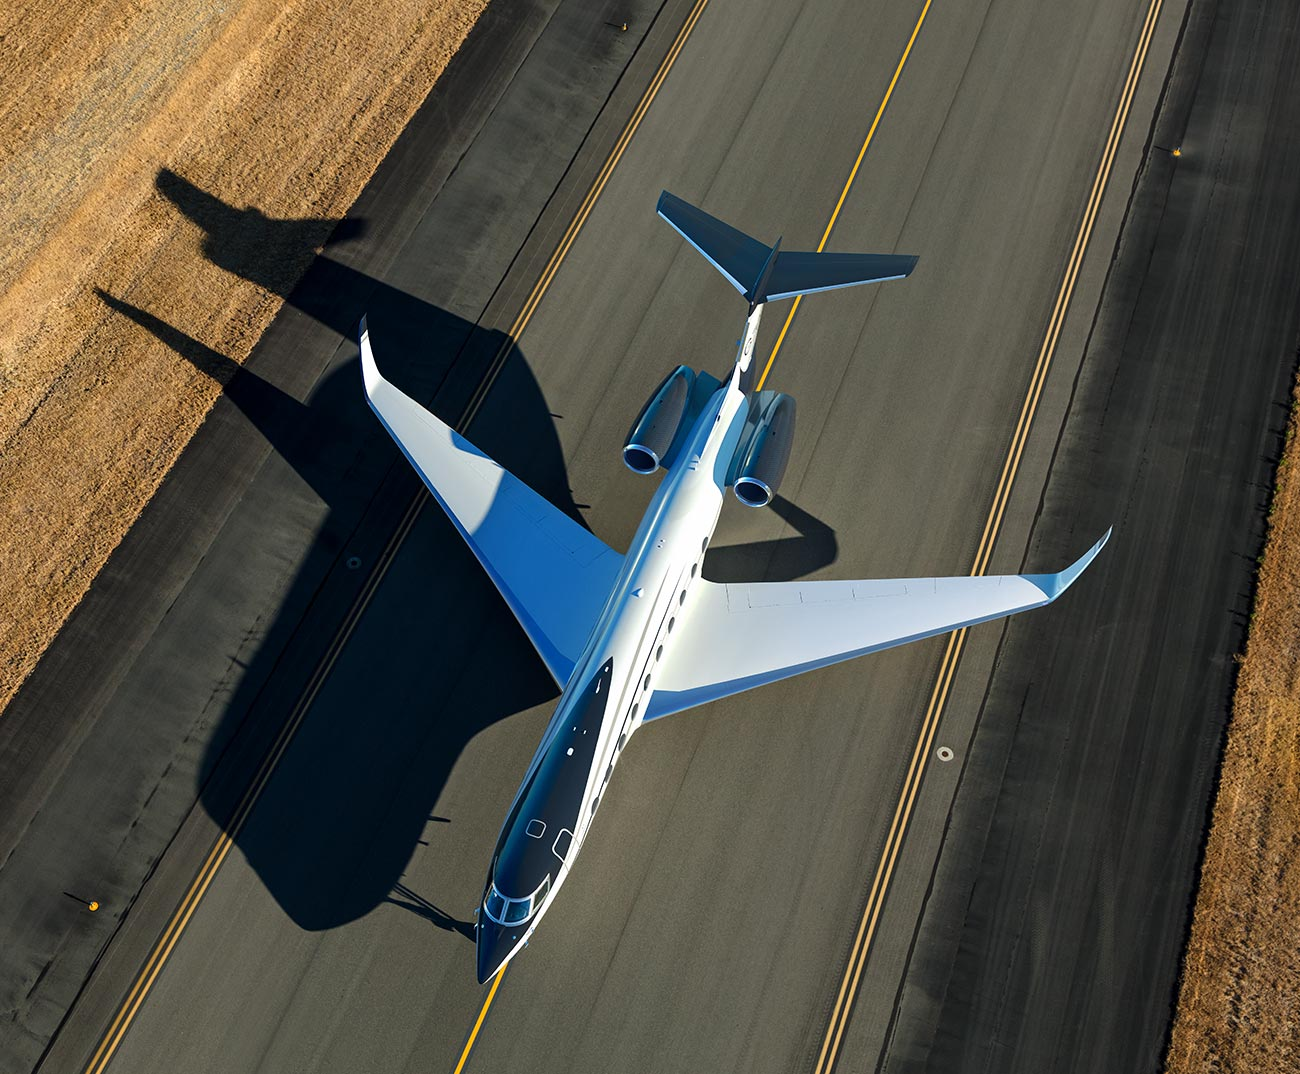 Aerial image of Airplane taxied on runway